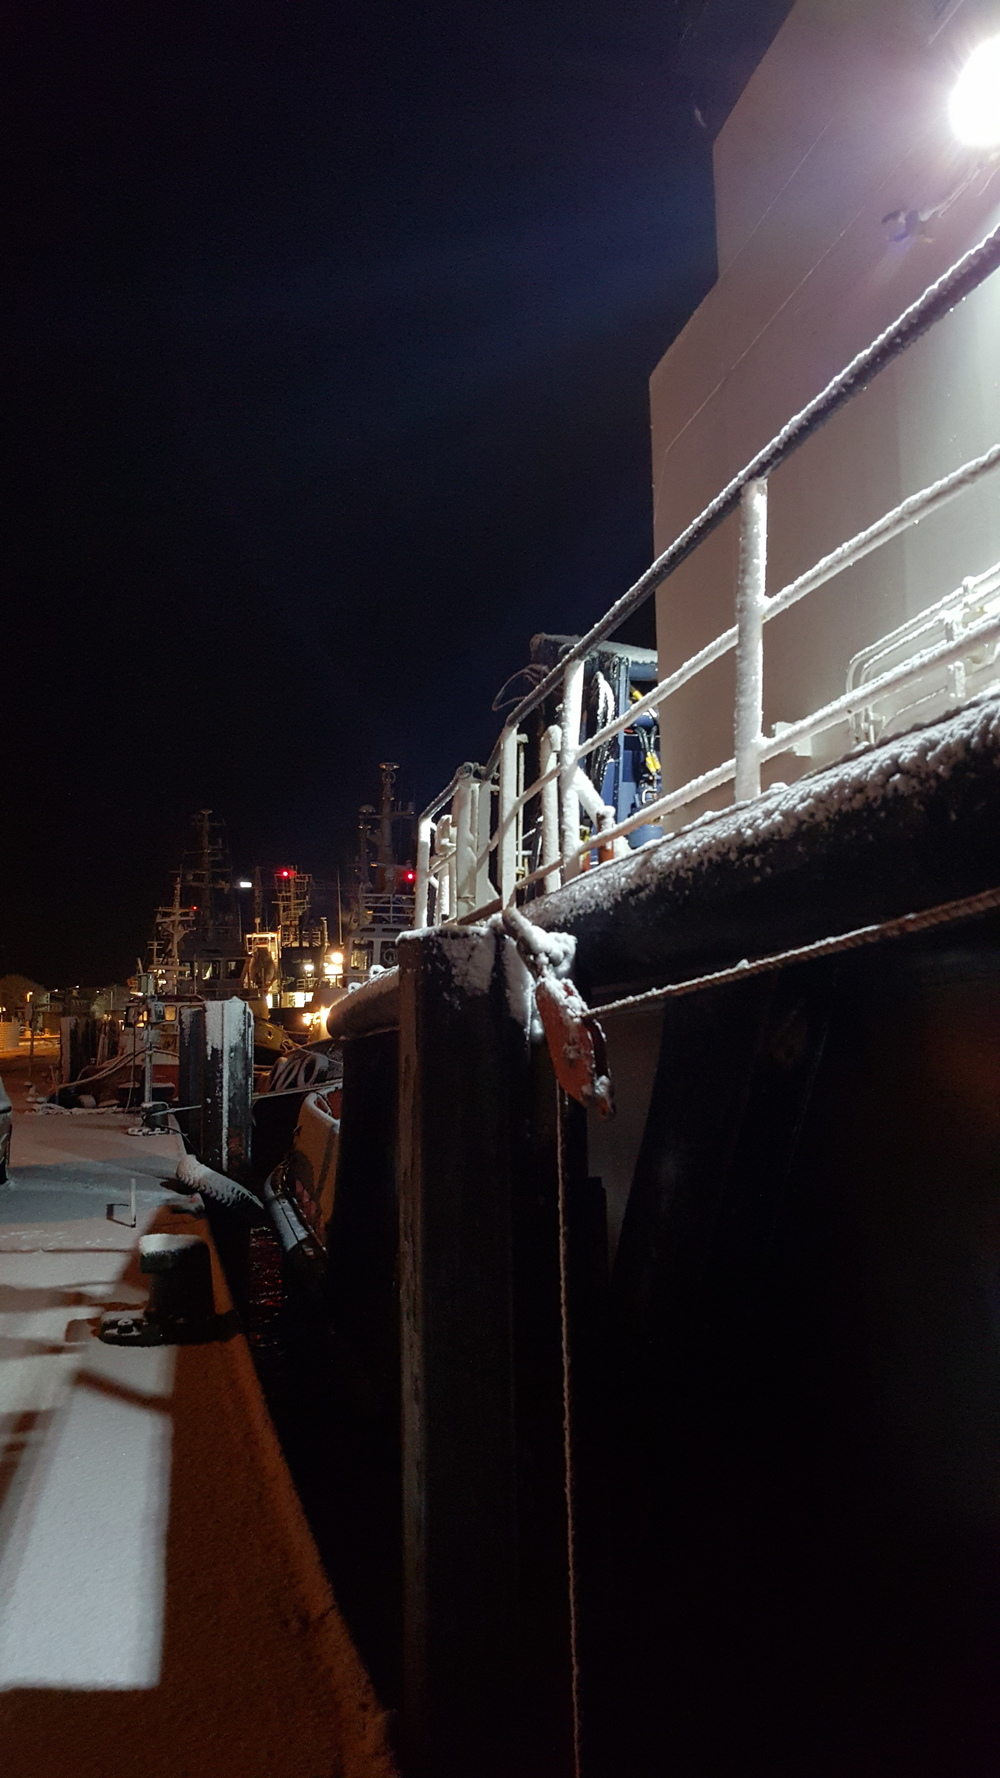 Otto Wulf tugboats in the port of Cuxhaven on an icy and wintry night.